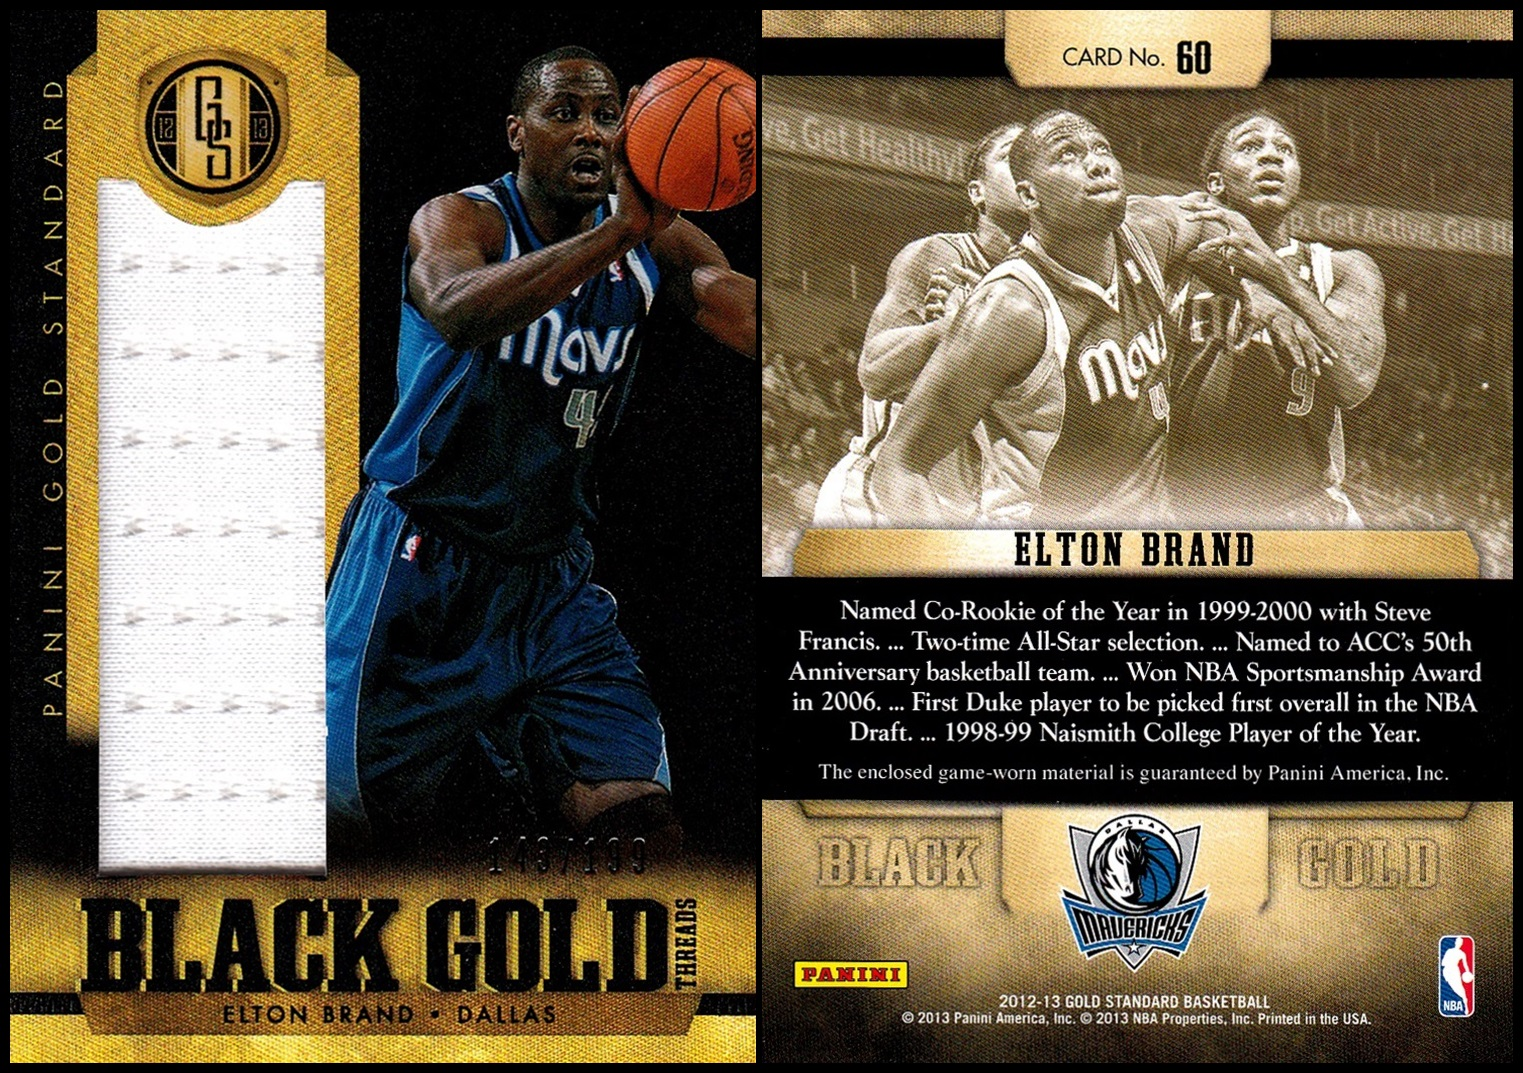 0069171e3bc  39 2010-11 Panini Season Update  22. I had only two cards from this set  but got a box for Christmas. One of the new cards I got was Elton.